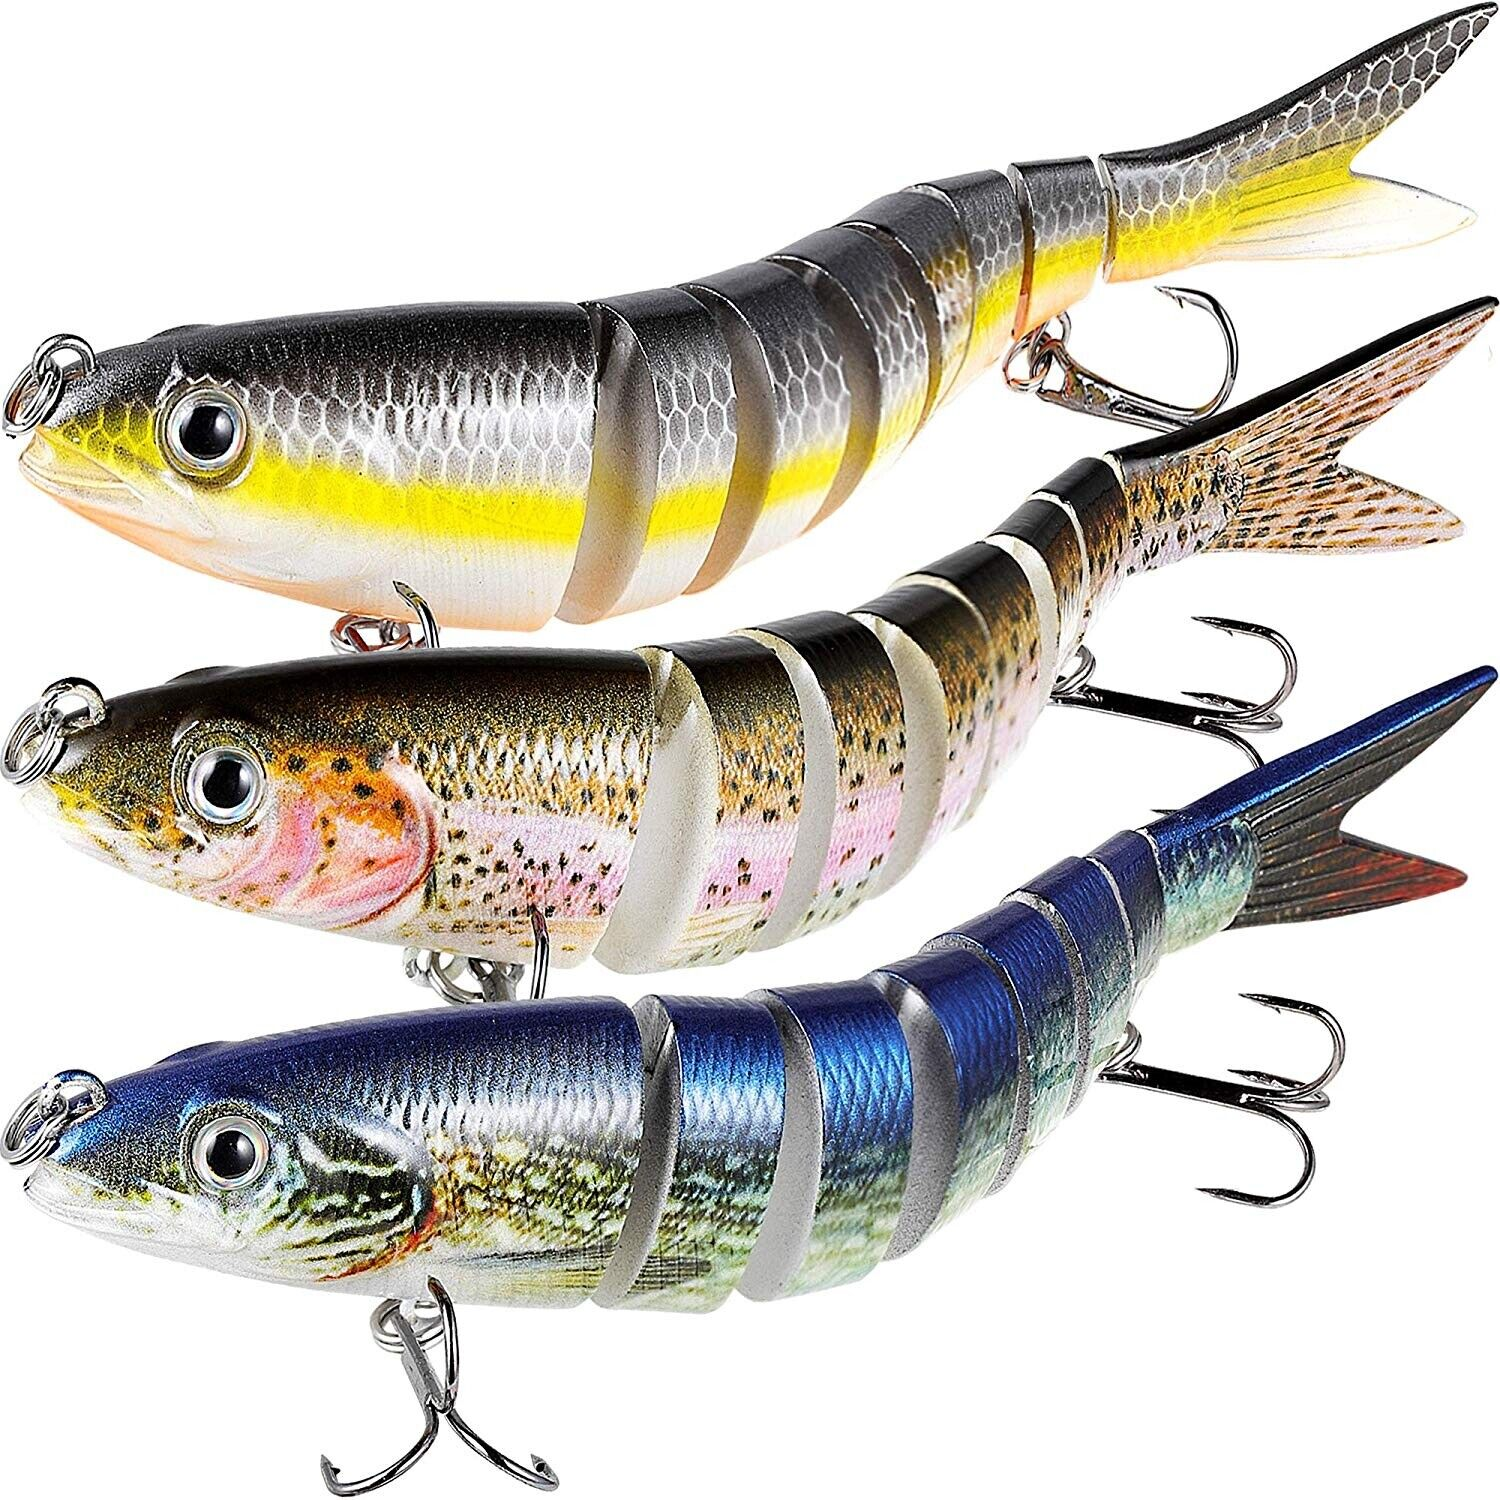 TRUSCEND Fishing Bass Lures Multi Jointed Topwater Life-Like Trout Swimbait